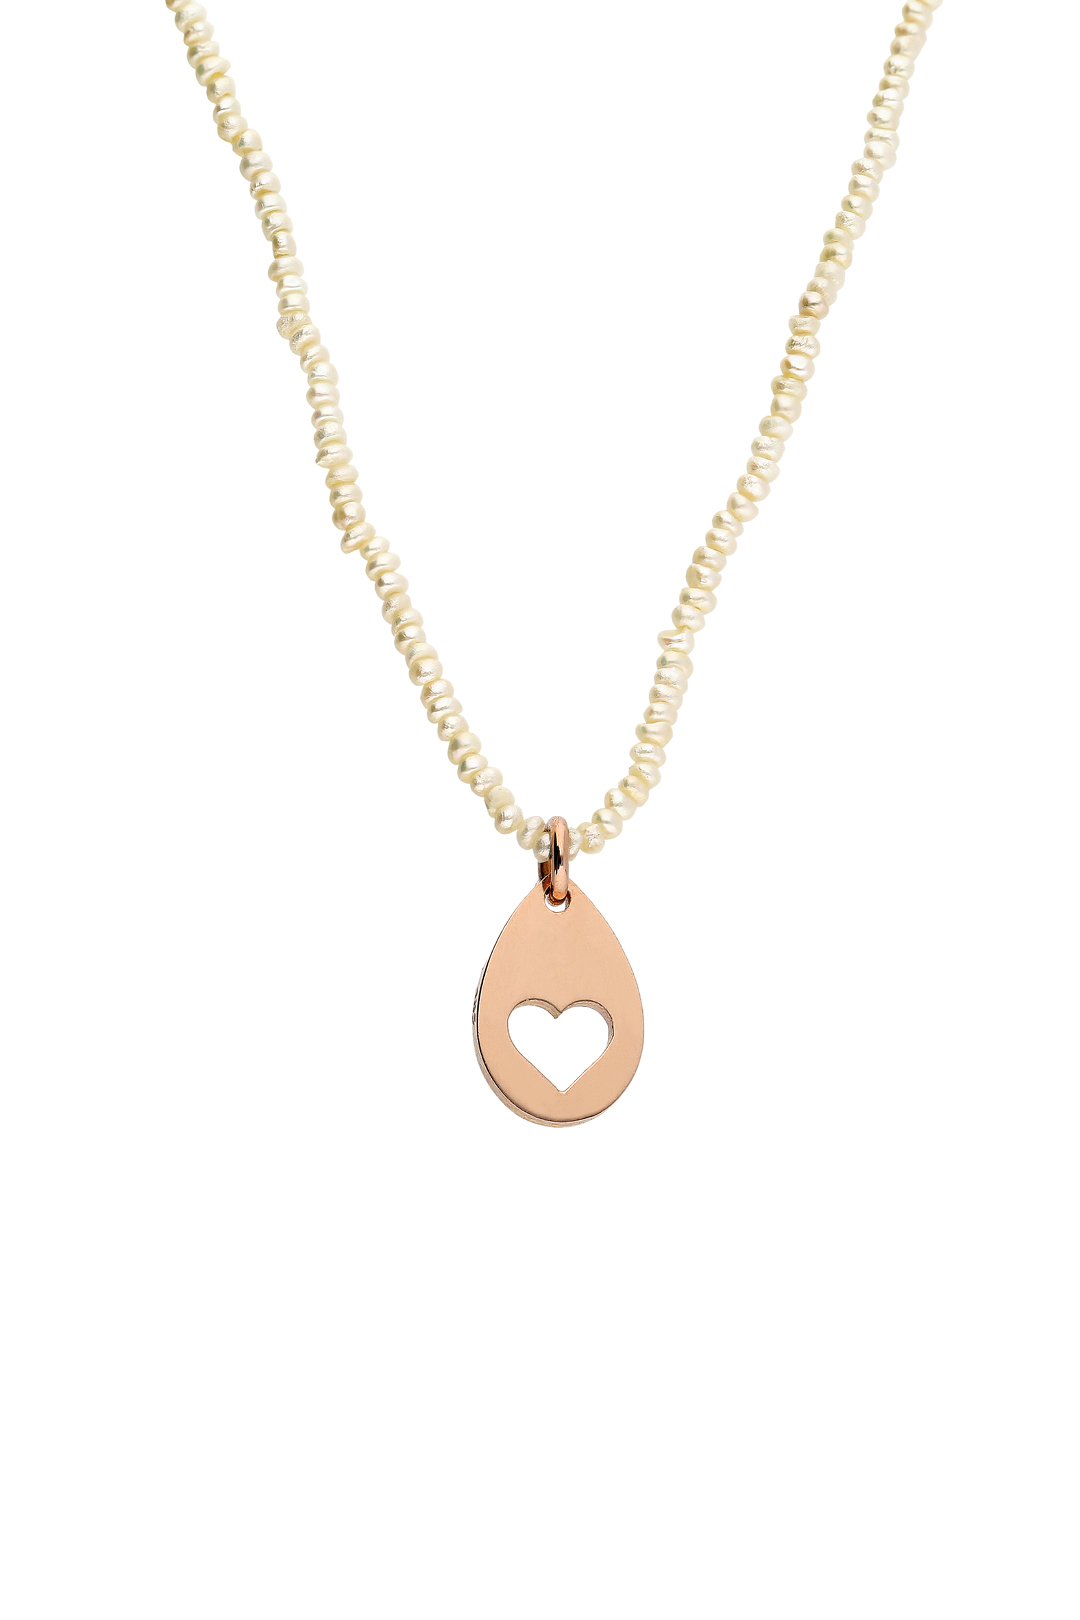 Pearl and Gold Heart Charm Necklace